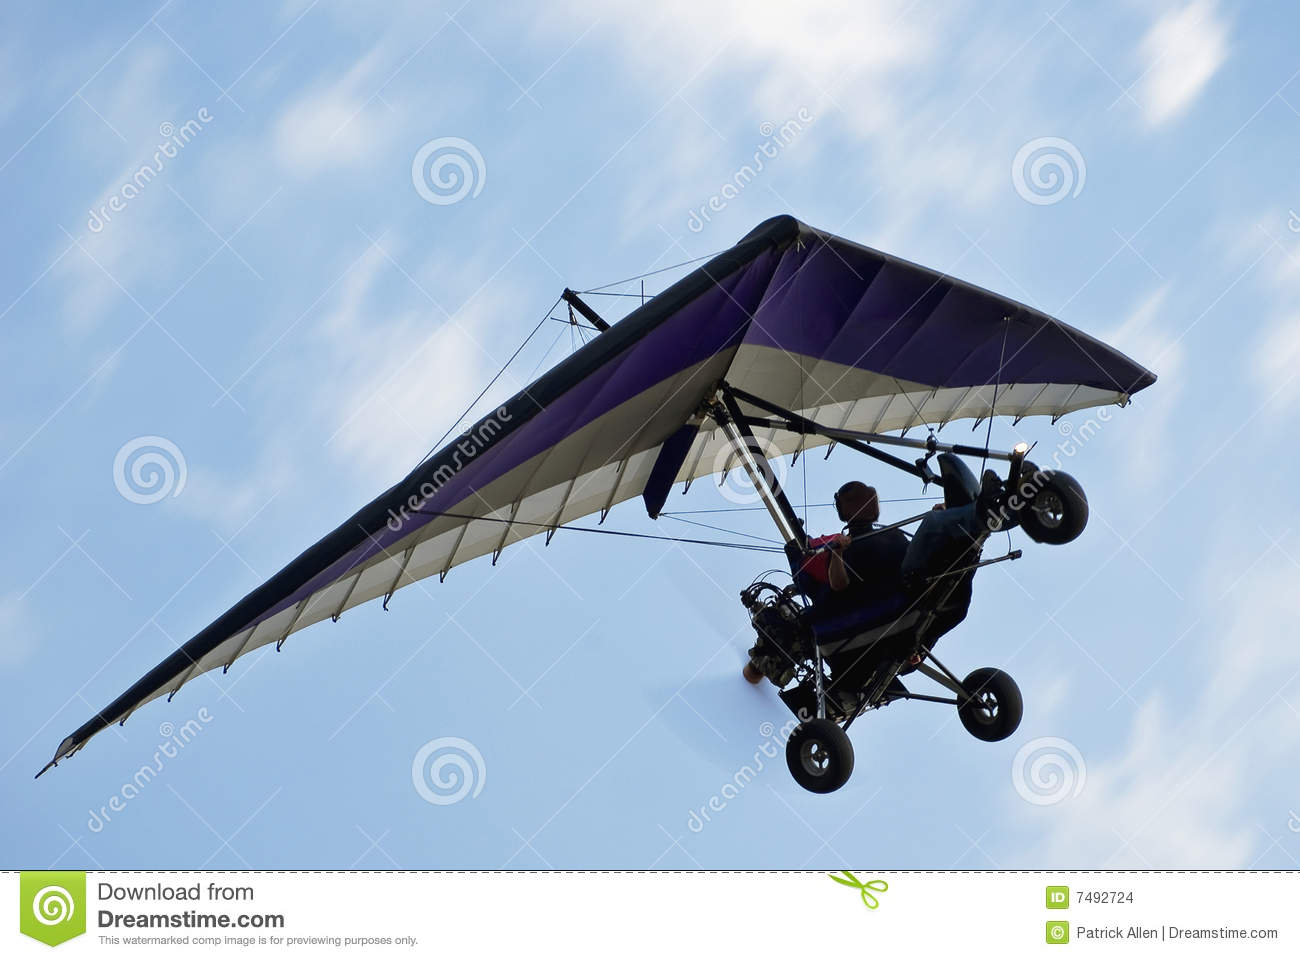 Aeroplane Fly Motorized Hang Glider In Flight Stock Images - Image: 7492724